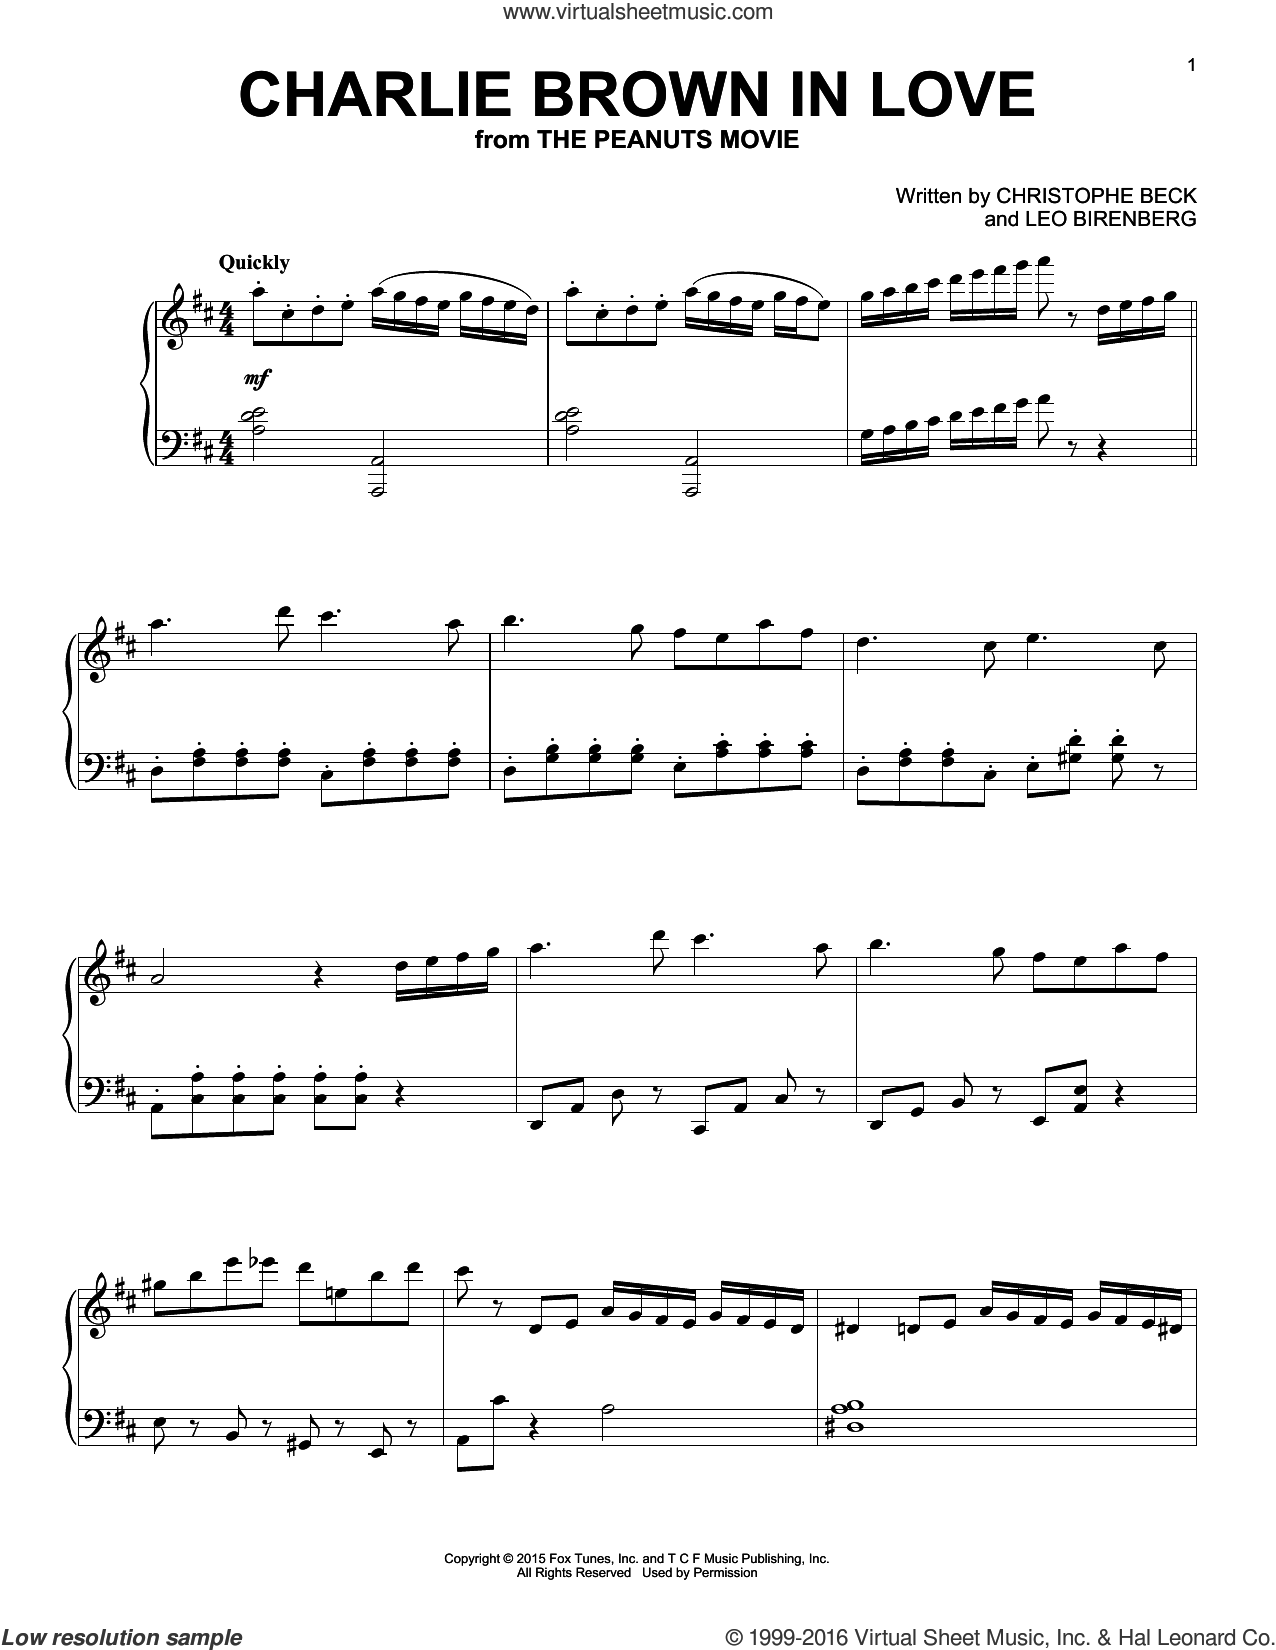 Charlie Brown In Love, (intermediate) sheet music for piano solo by Christophe Beck and Leo Birenberg, intermediate